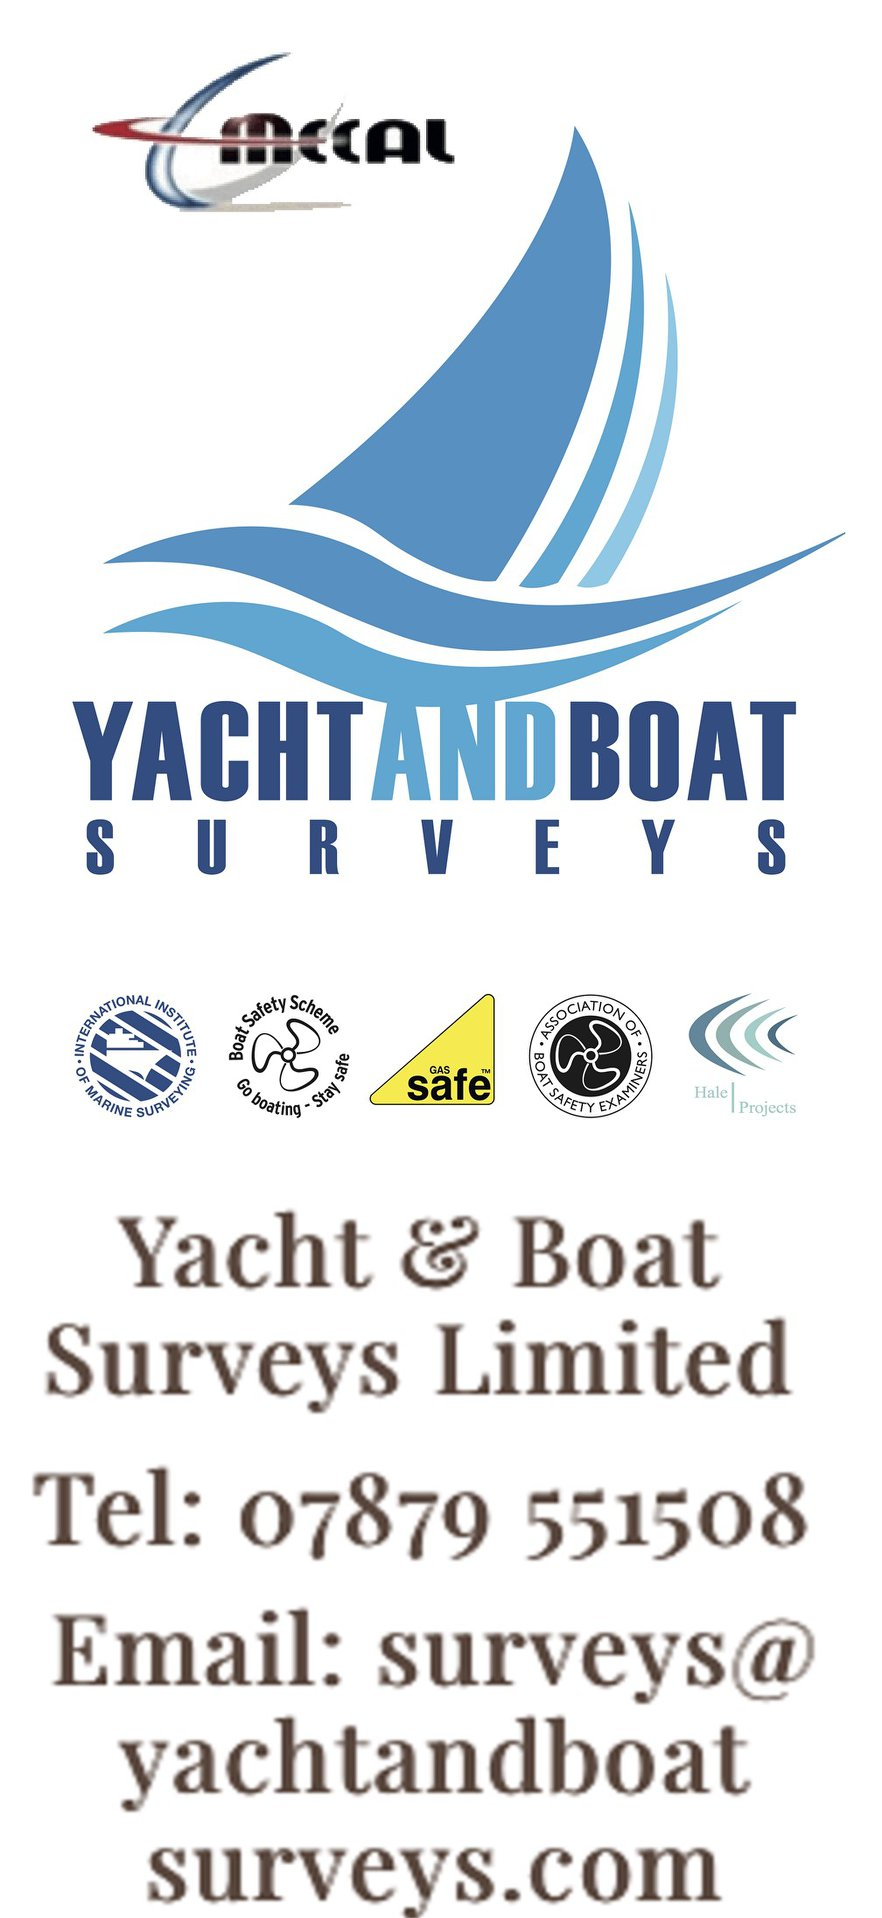 Yacht & Boat Survey Services - UK Wide www.yachtandboatsurveys.com